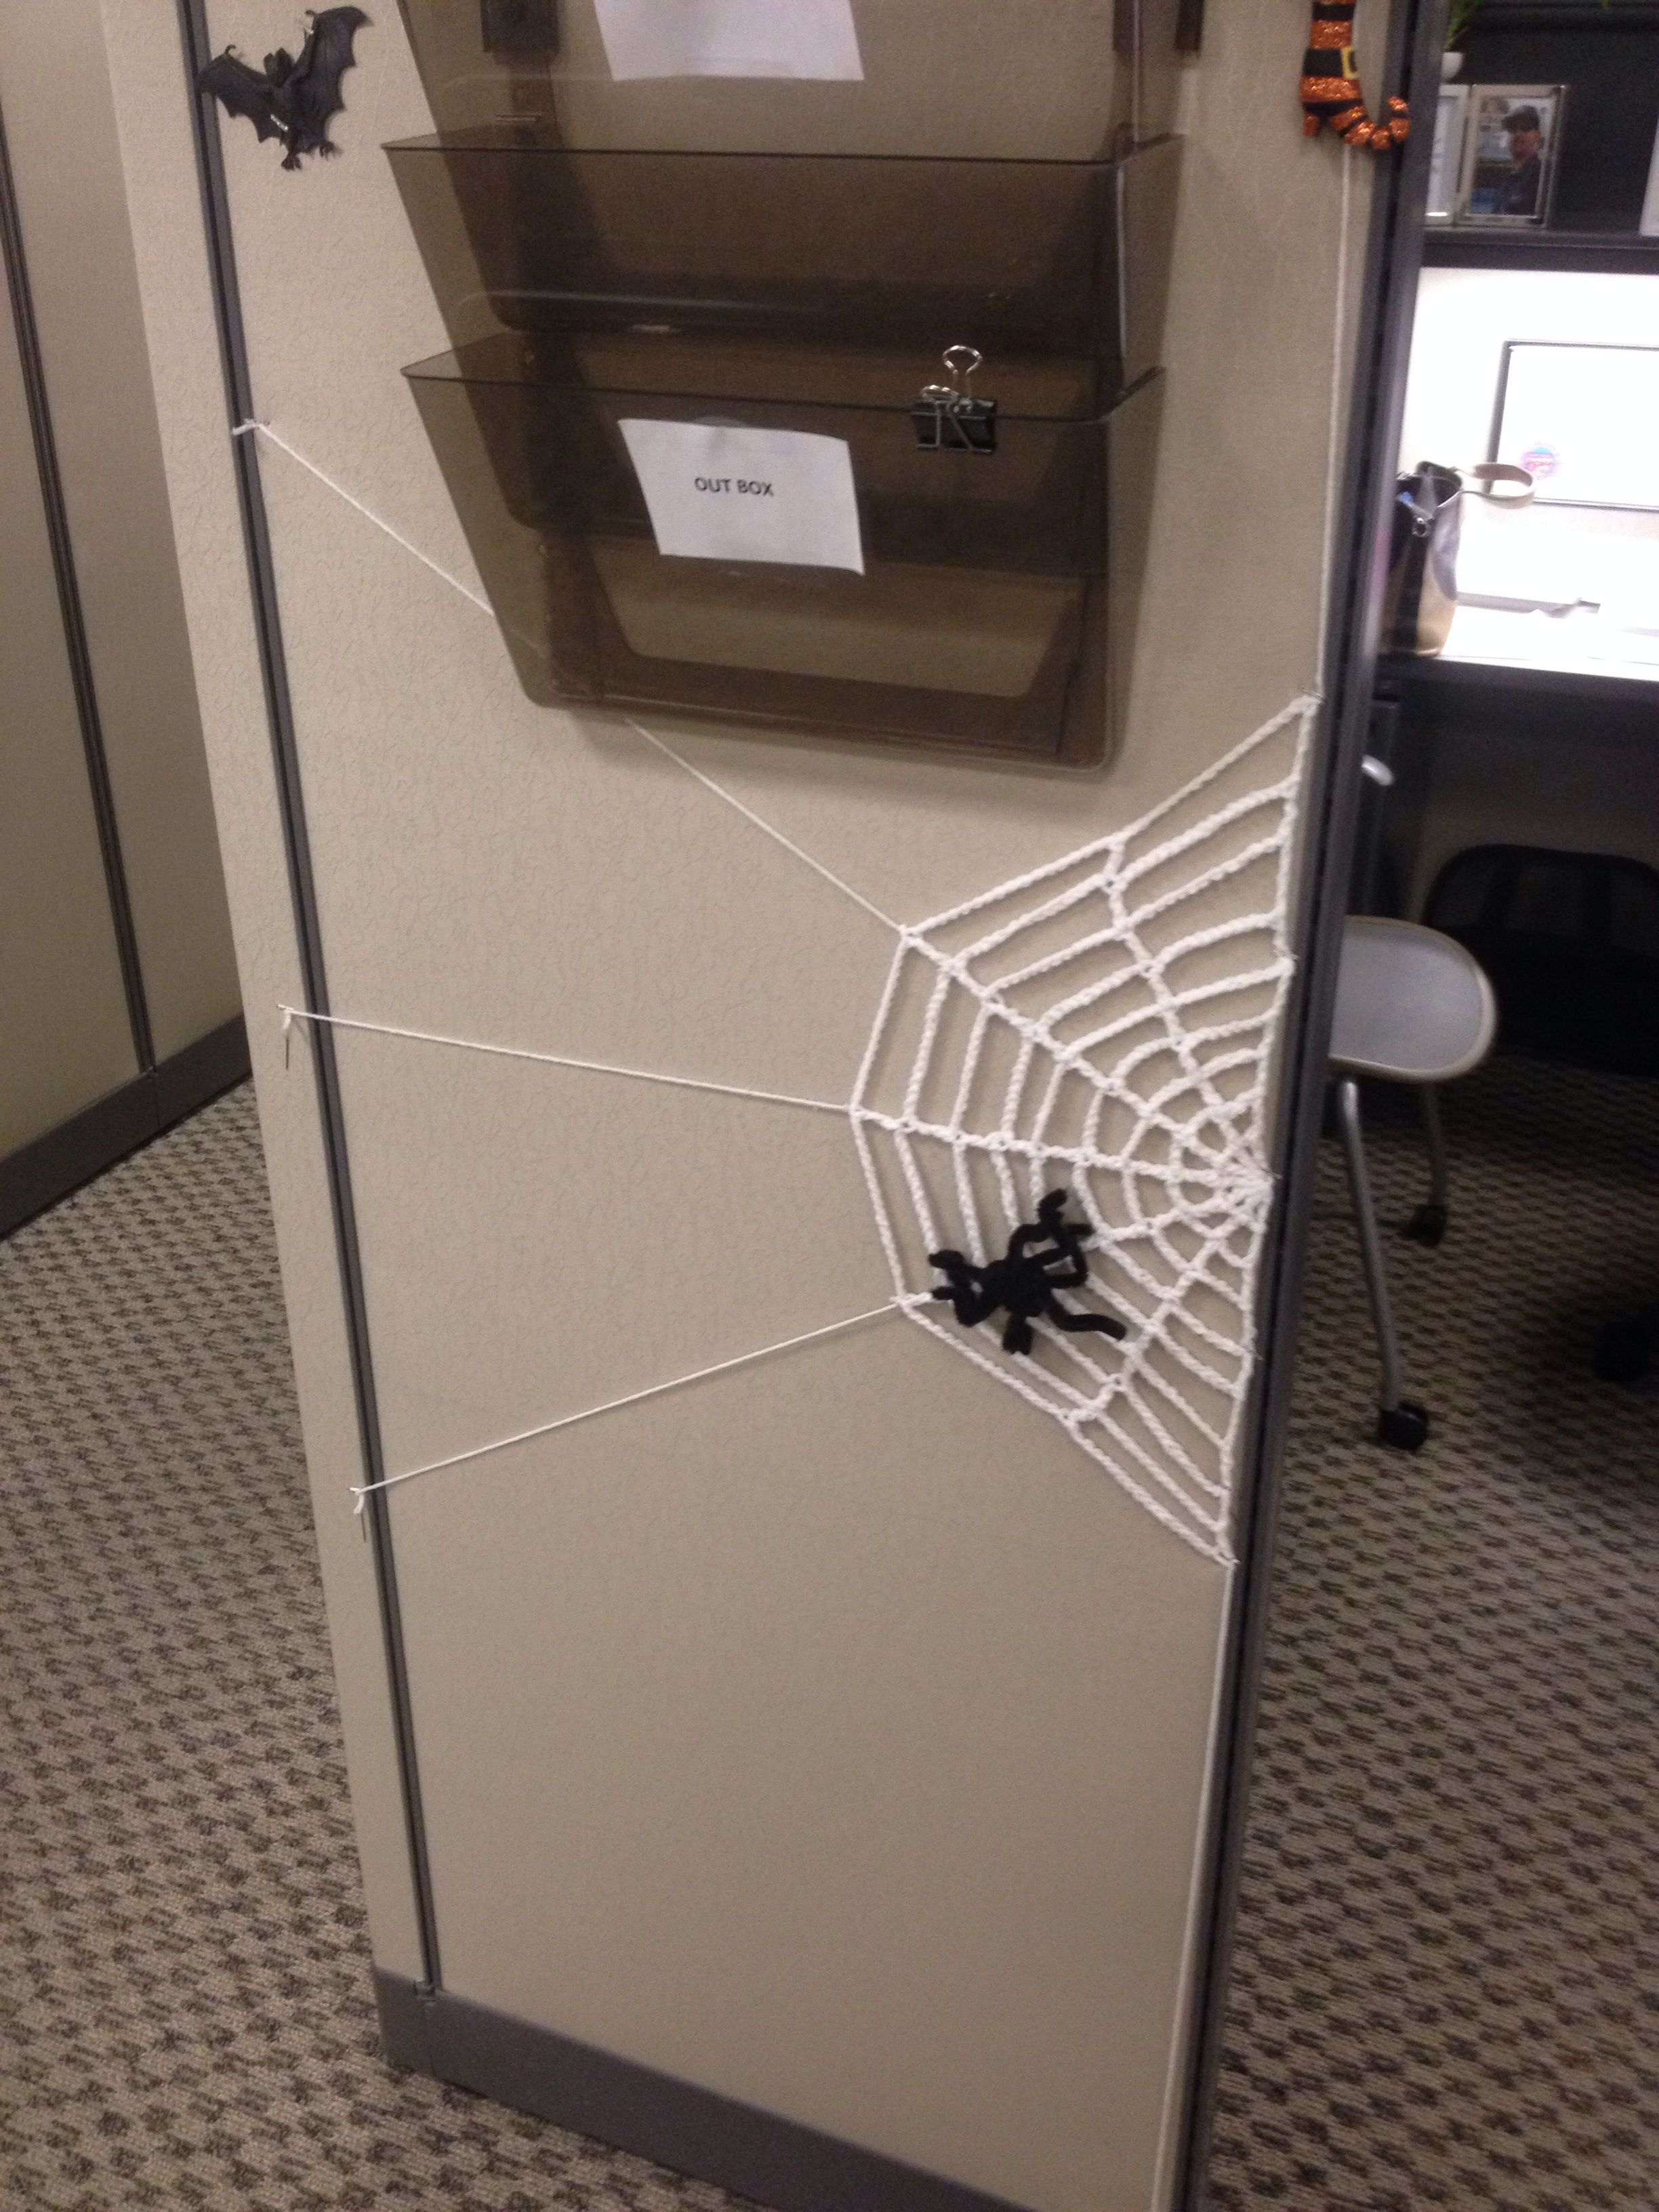 Spider Web Cubicle Decor Lol Cubicle Halloween Decorations Halloween Cubicle Work Cubicle Decor